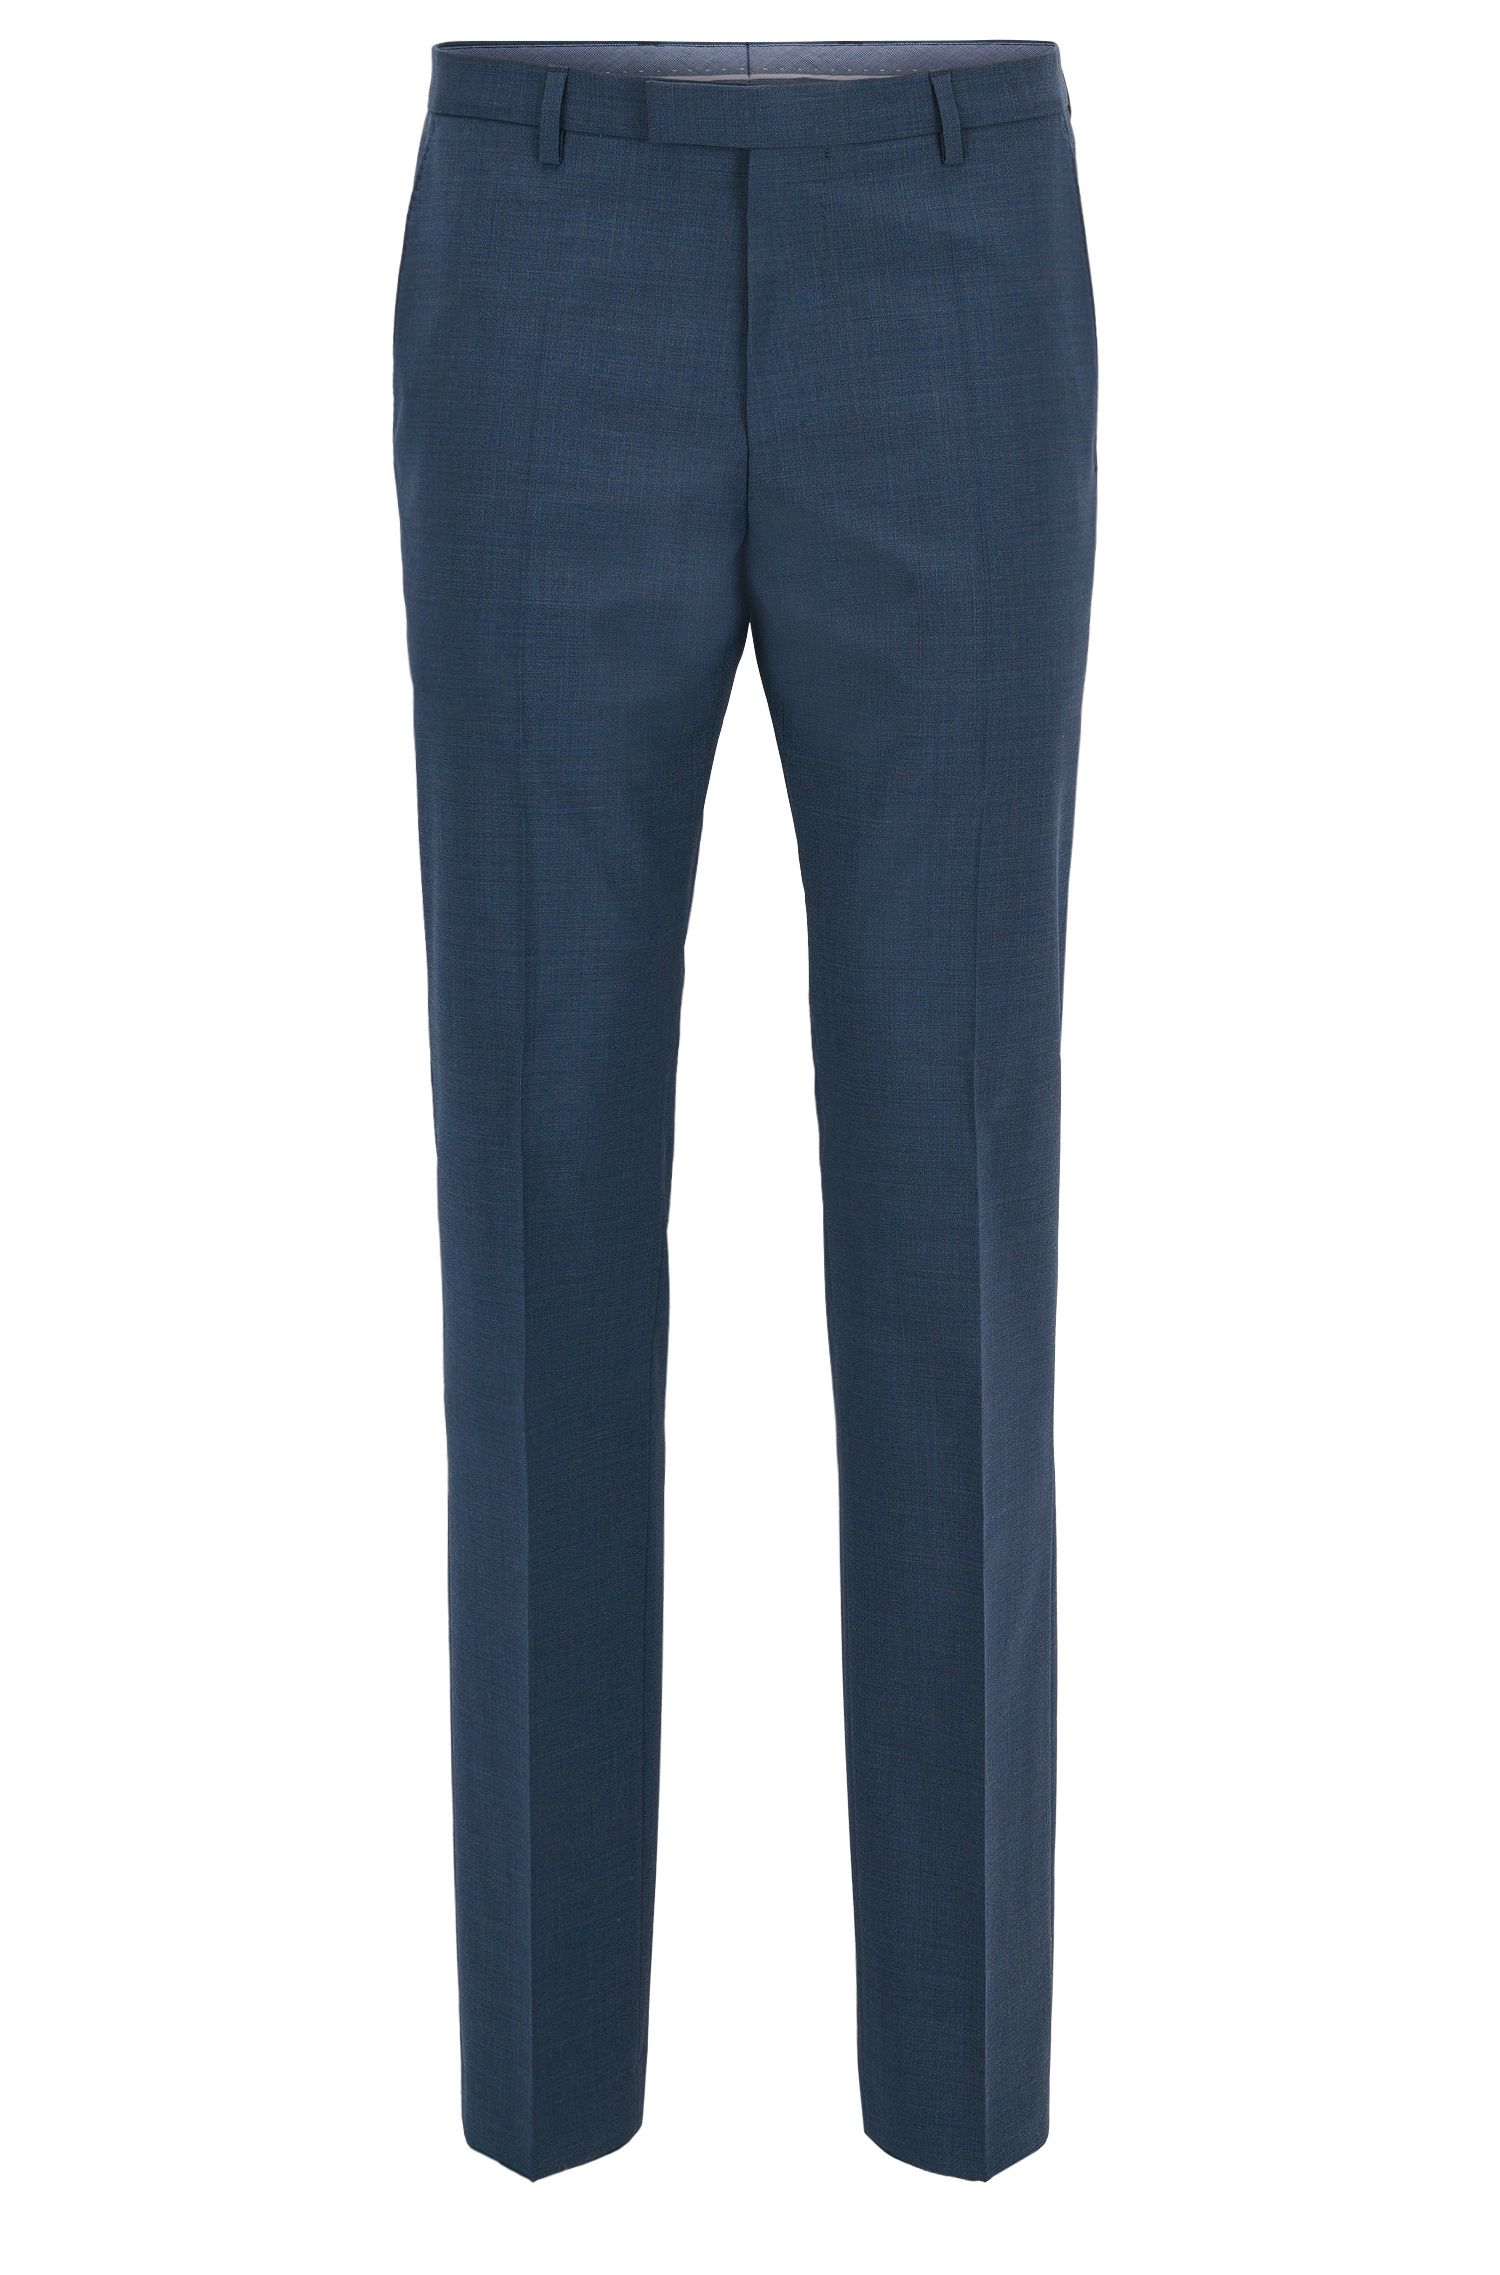 Virgin Wool Cashmere Dress Pant, Regular Fit | Leenon